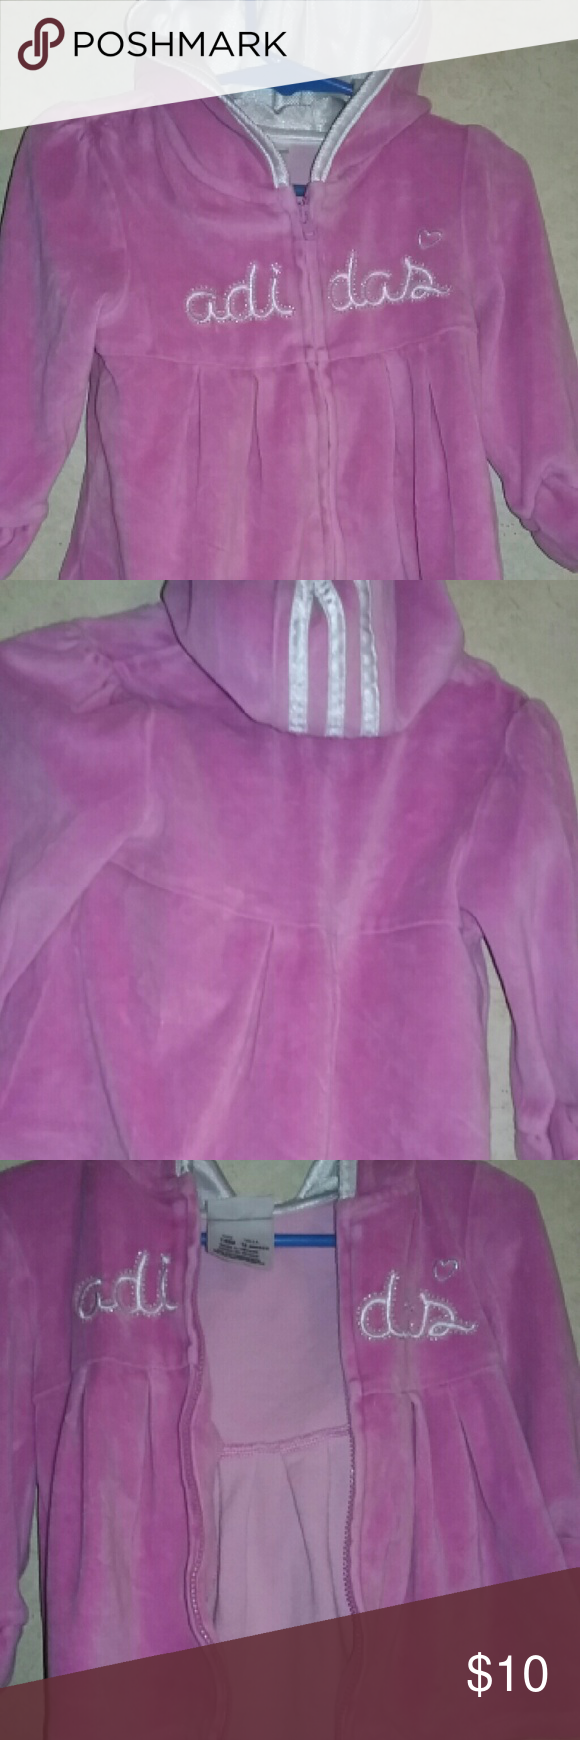 ADIDAS ZIP UP HOODIE ADIDAS ZIP UP HOODIE SIZE GIRLS 18 MONTHS... IN NEW CONDITION... FAST SHIPPING adidas Shirts & Tops Sweatshirts & Hoodies